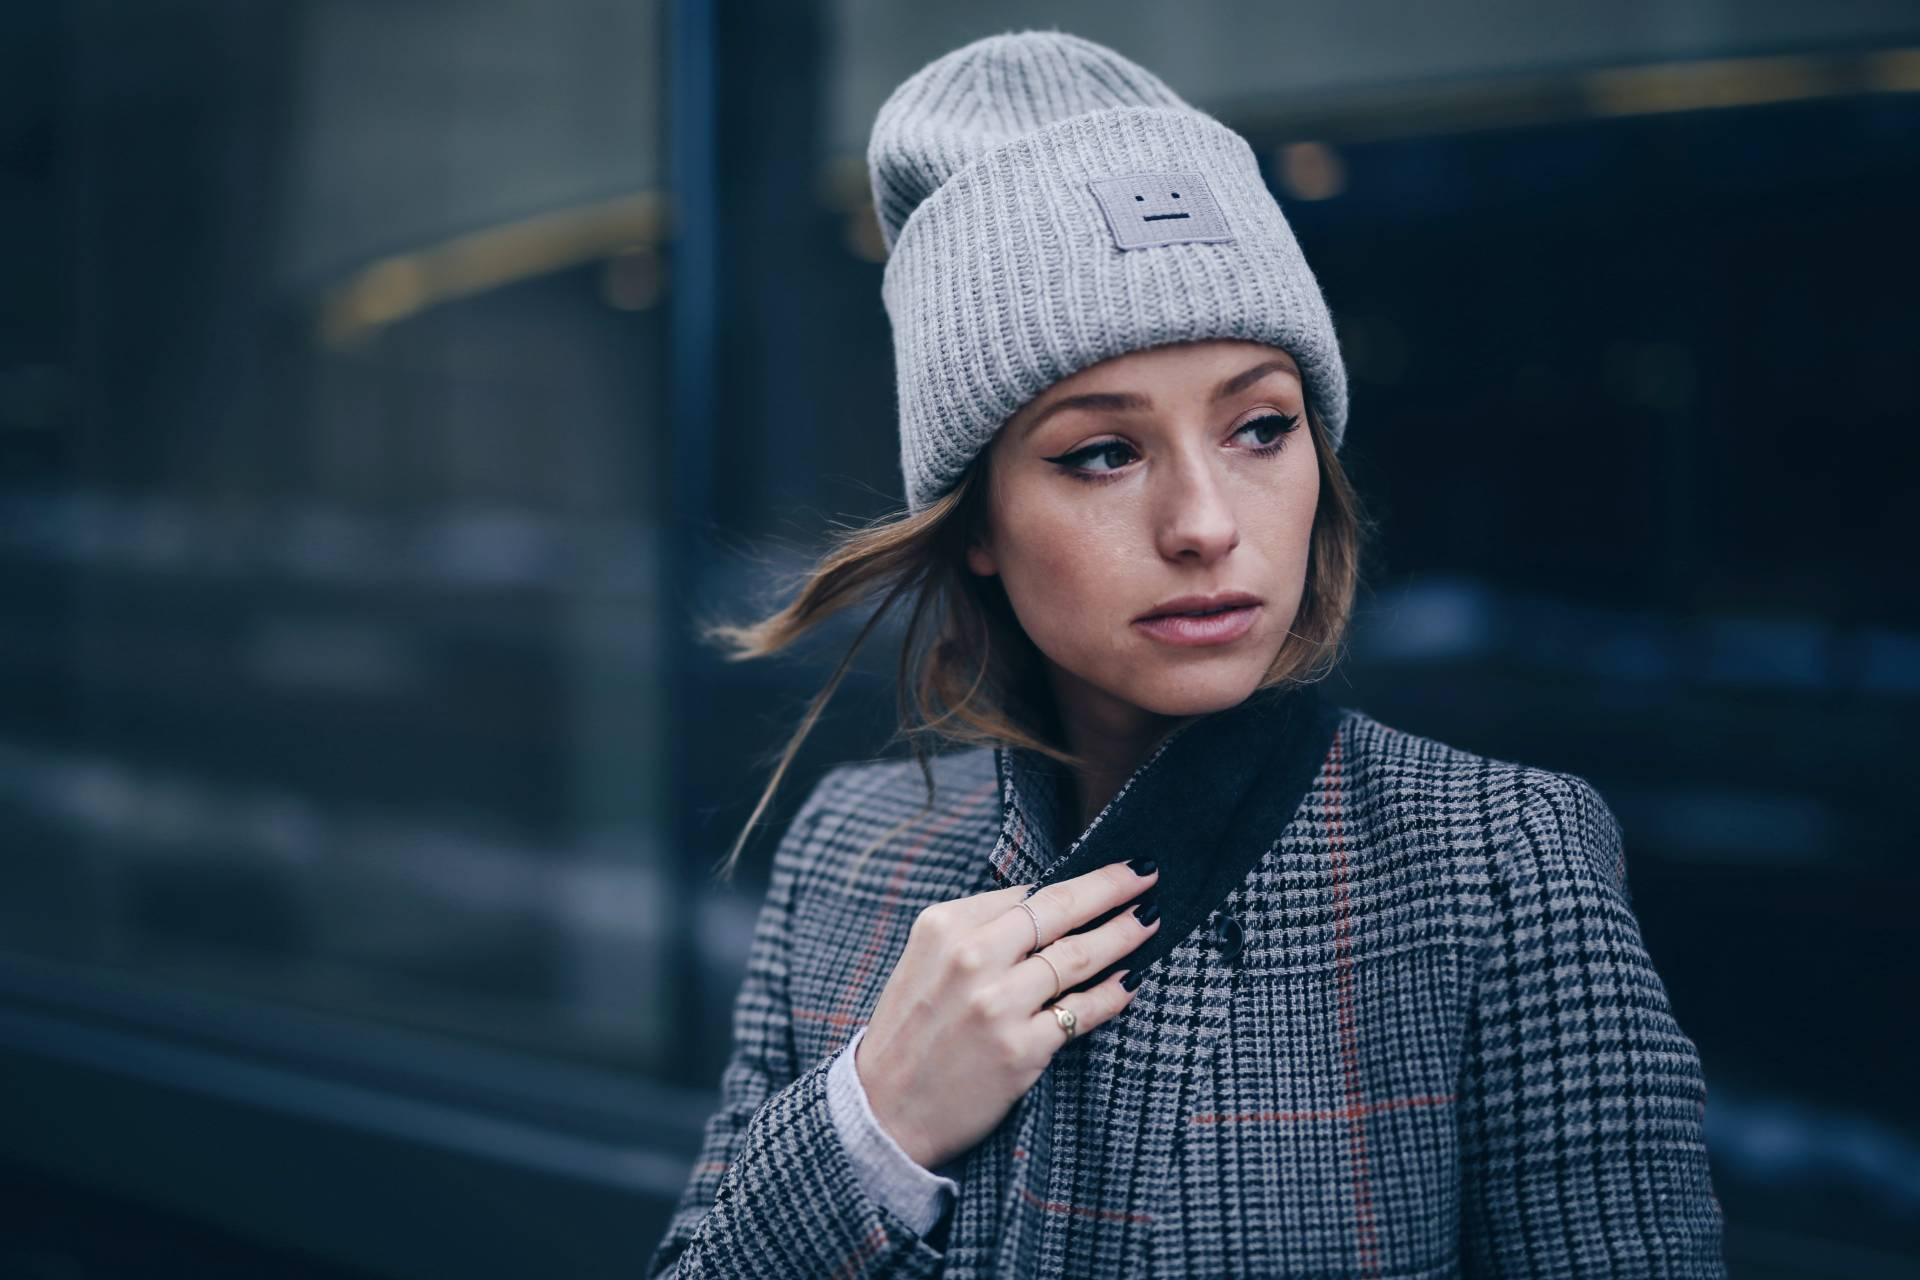 fi-Style and beauty blogger Jill Lansky of The August Diaries on how to stay warm + stylish in the winter in Acne Pansy toque, plaid maxi coat, Celine black box bag, 3.1 Phillip Lim boots